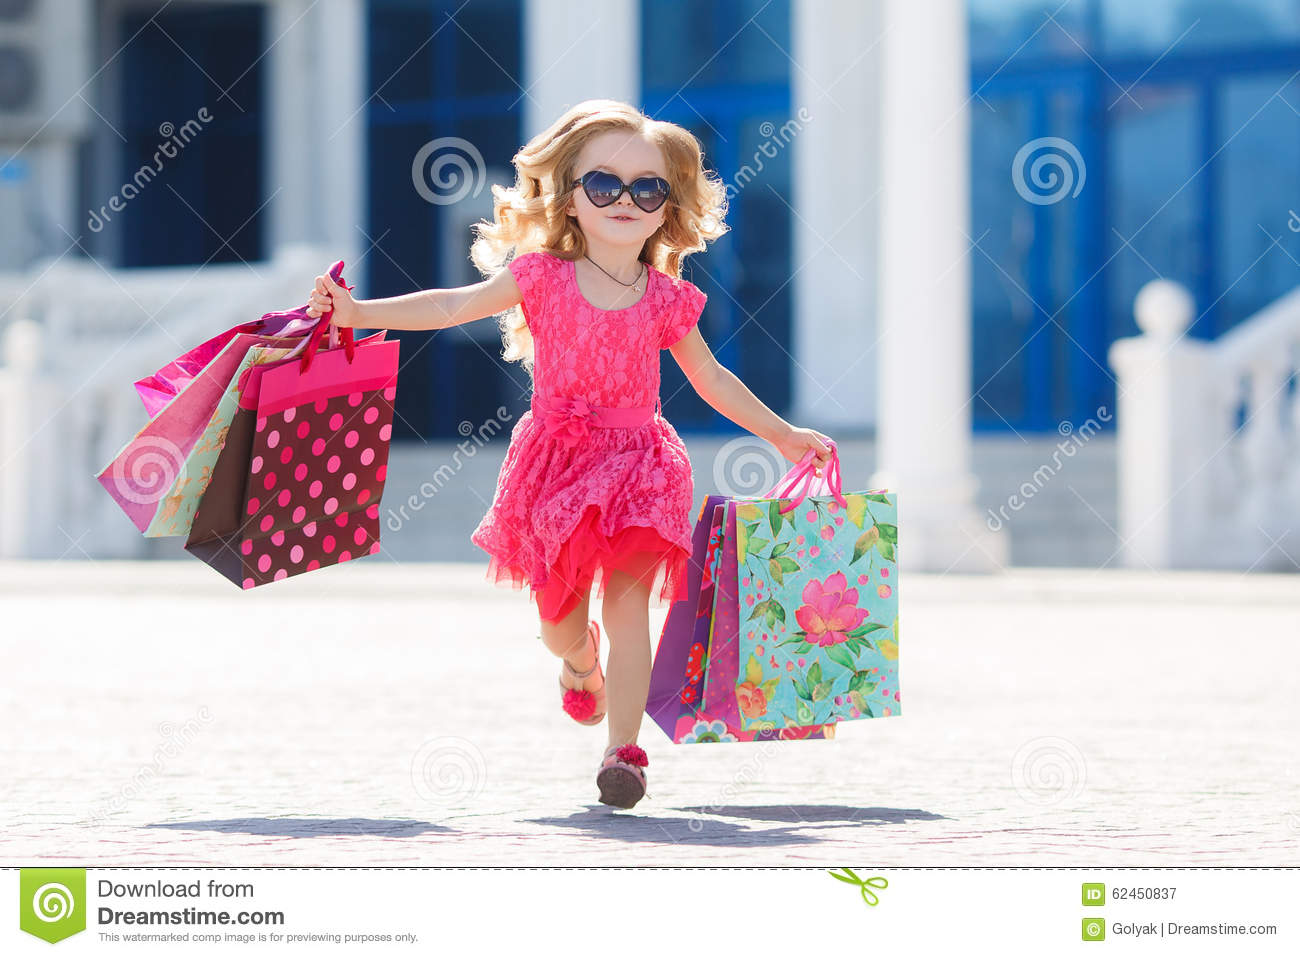 Cute Stylish Child Girl Wallpaper Little Girl With Shopping Bags Goes To The Store Stock